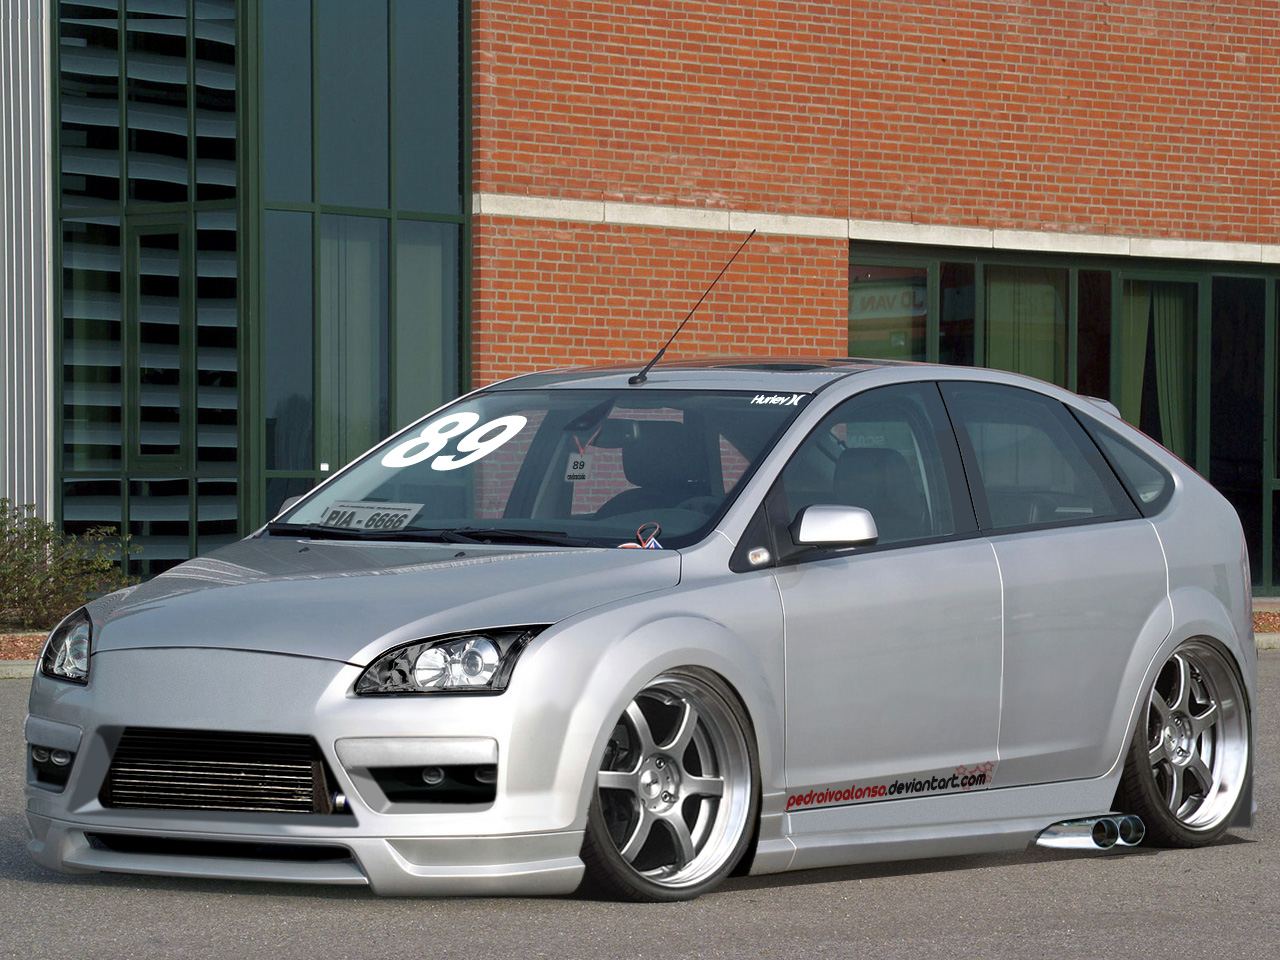 2009 ford focus day tuning by pedroivoalonso on deviantart. Black Bedroom Furniture Sets. Home Design Ideas